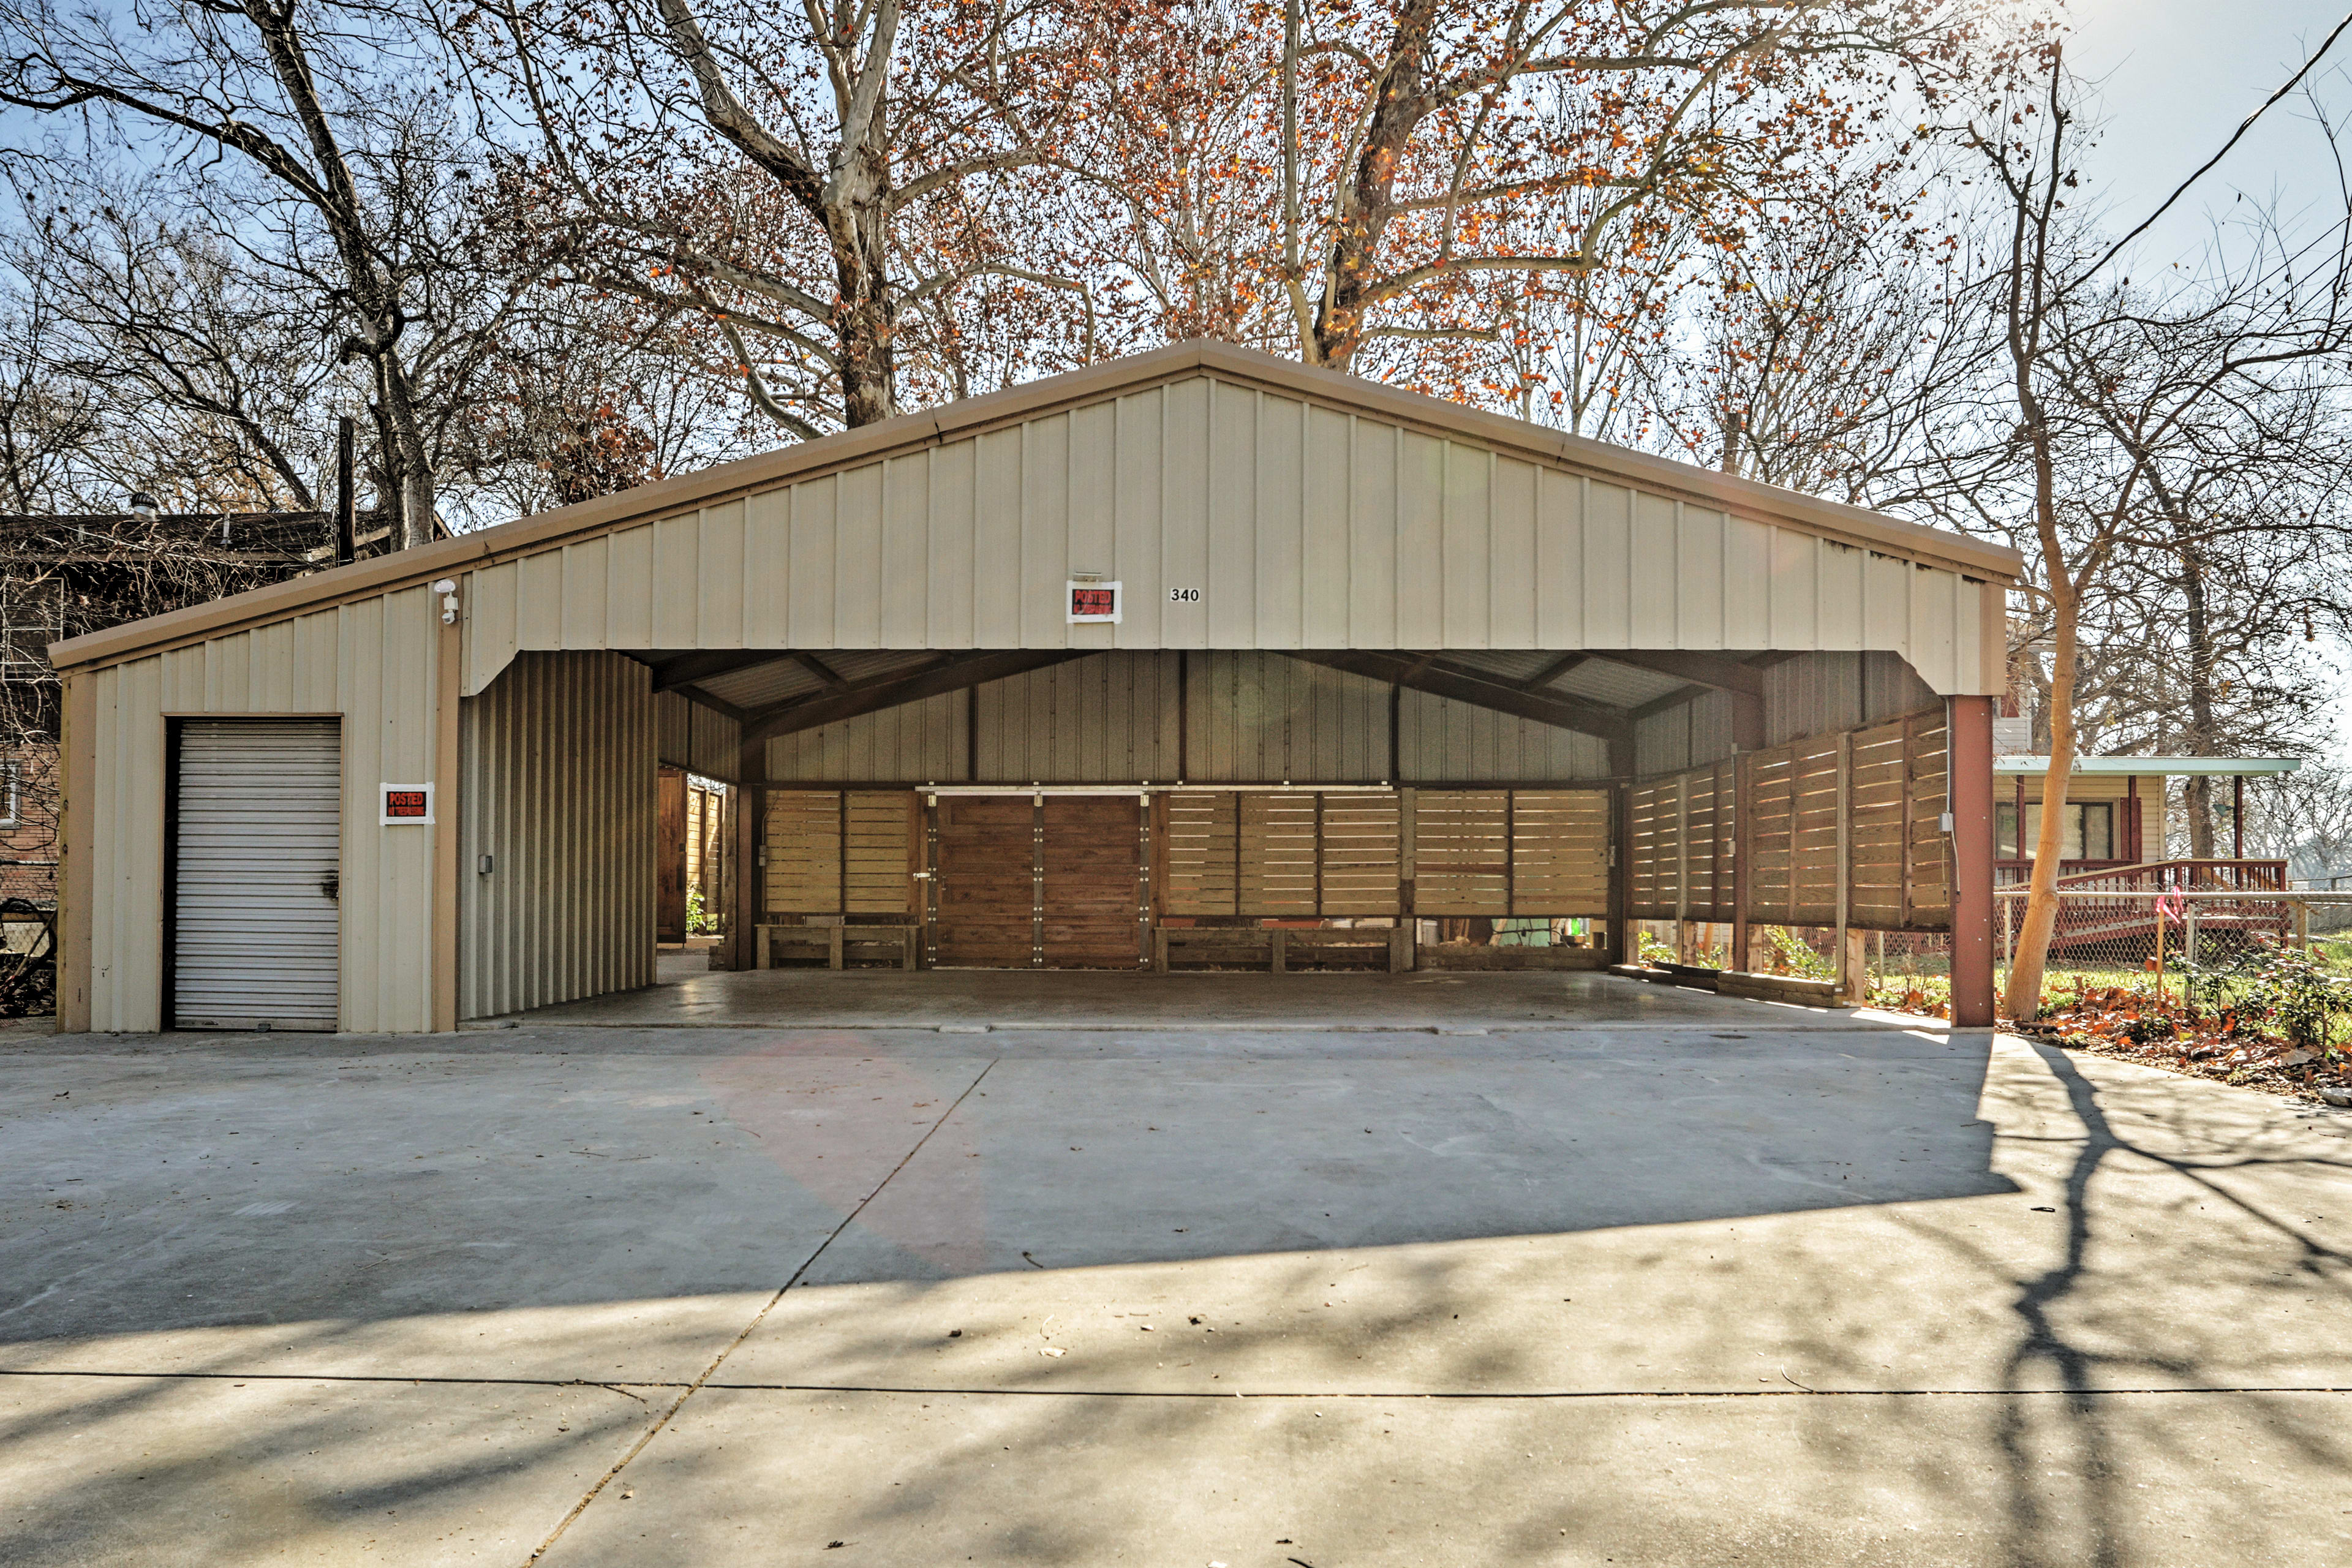 Carport (3 vehicles) | Driveway (10-11 Vehicles) | Trailers Permitted